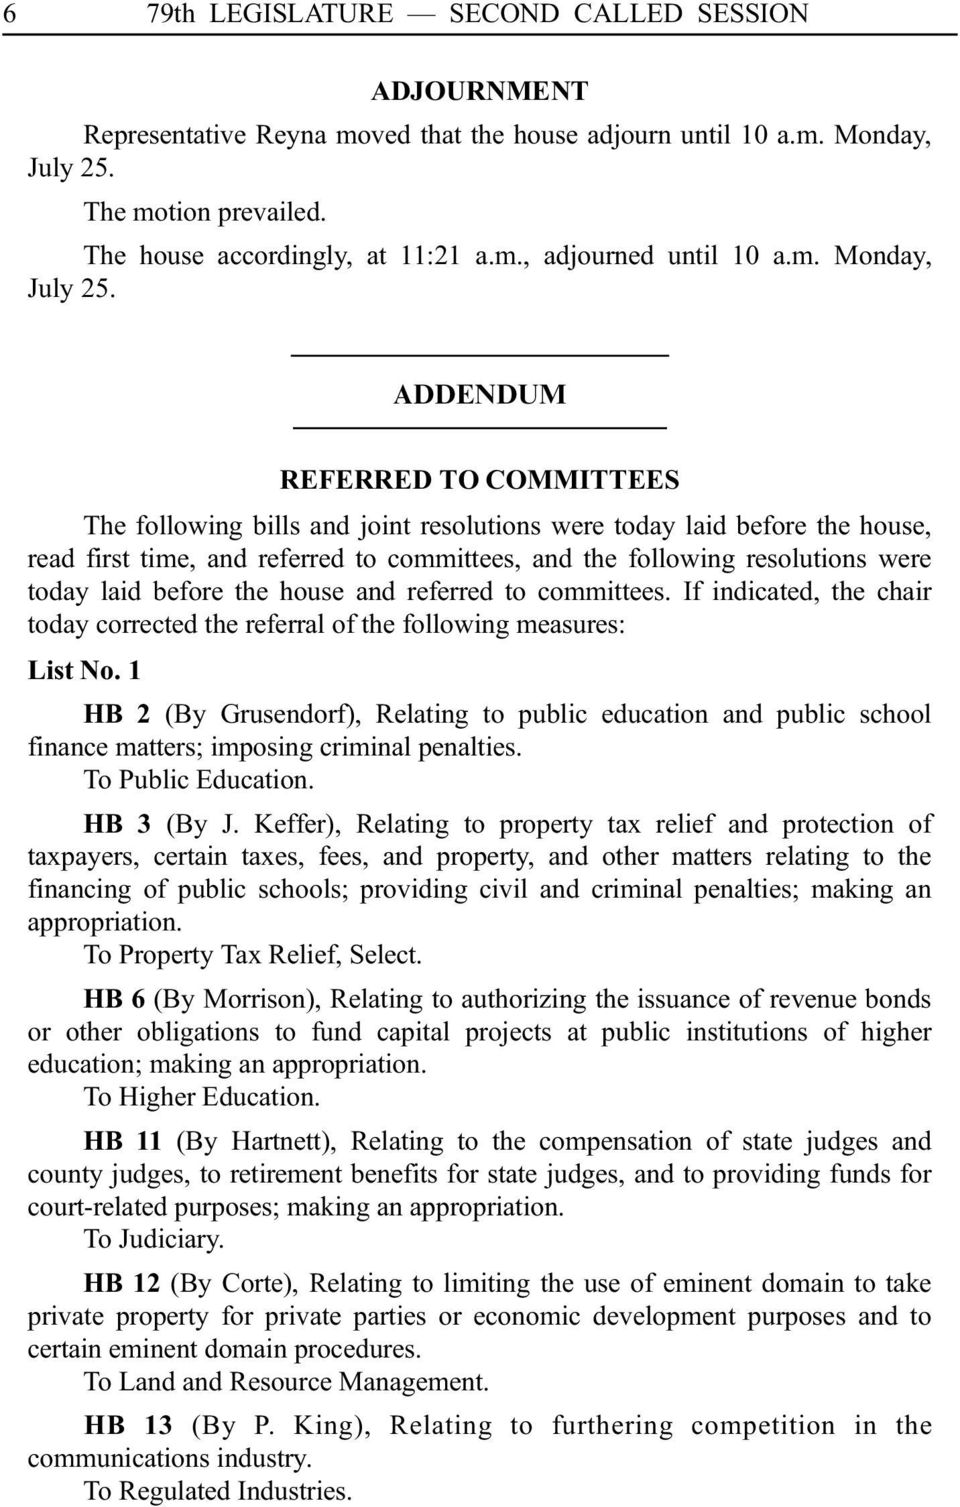 AAAAAADDENDUMAAAAA REFERRED TO COMMITTEES The following bills and joint resolutions were today laid before the house, read first time, and referred to committees, and the following resolutions were